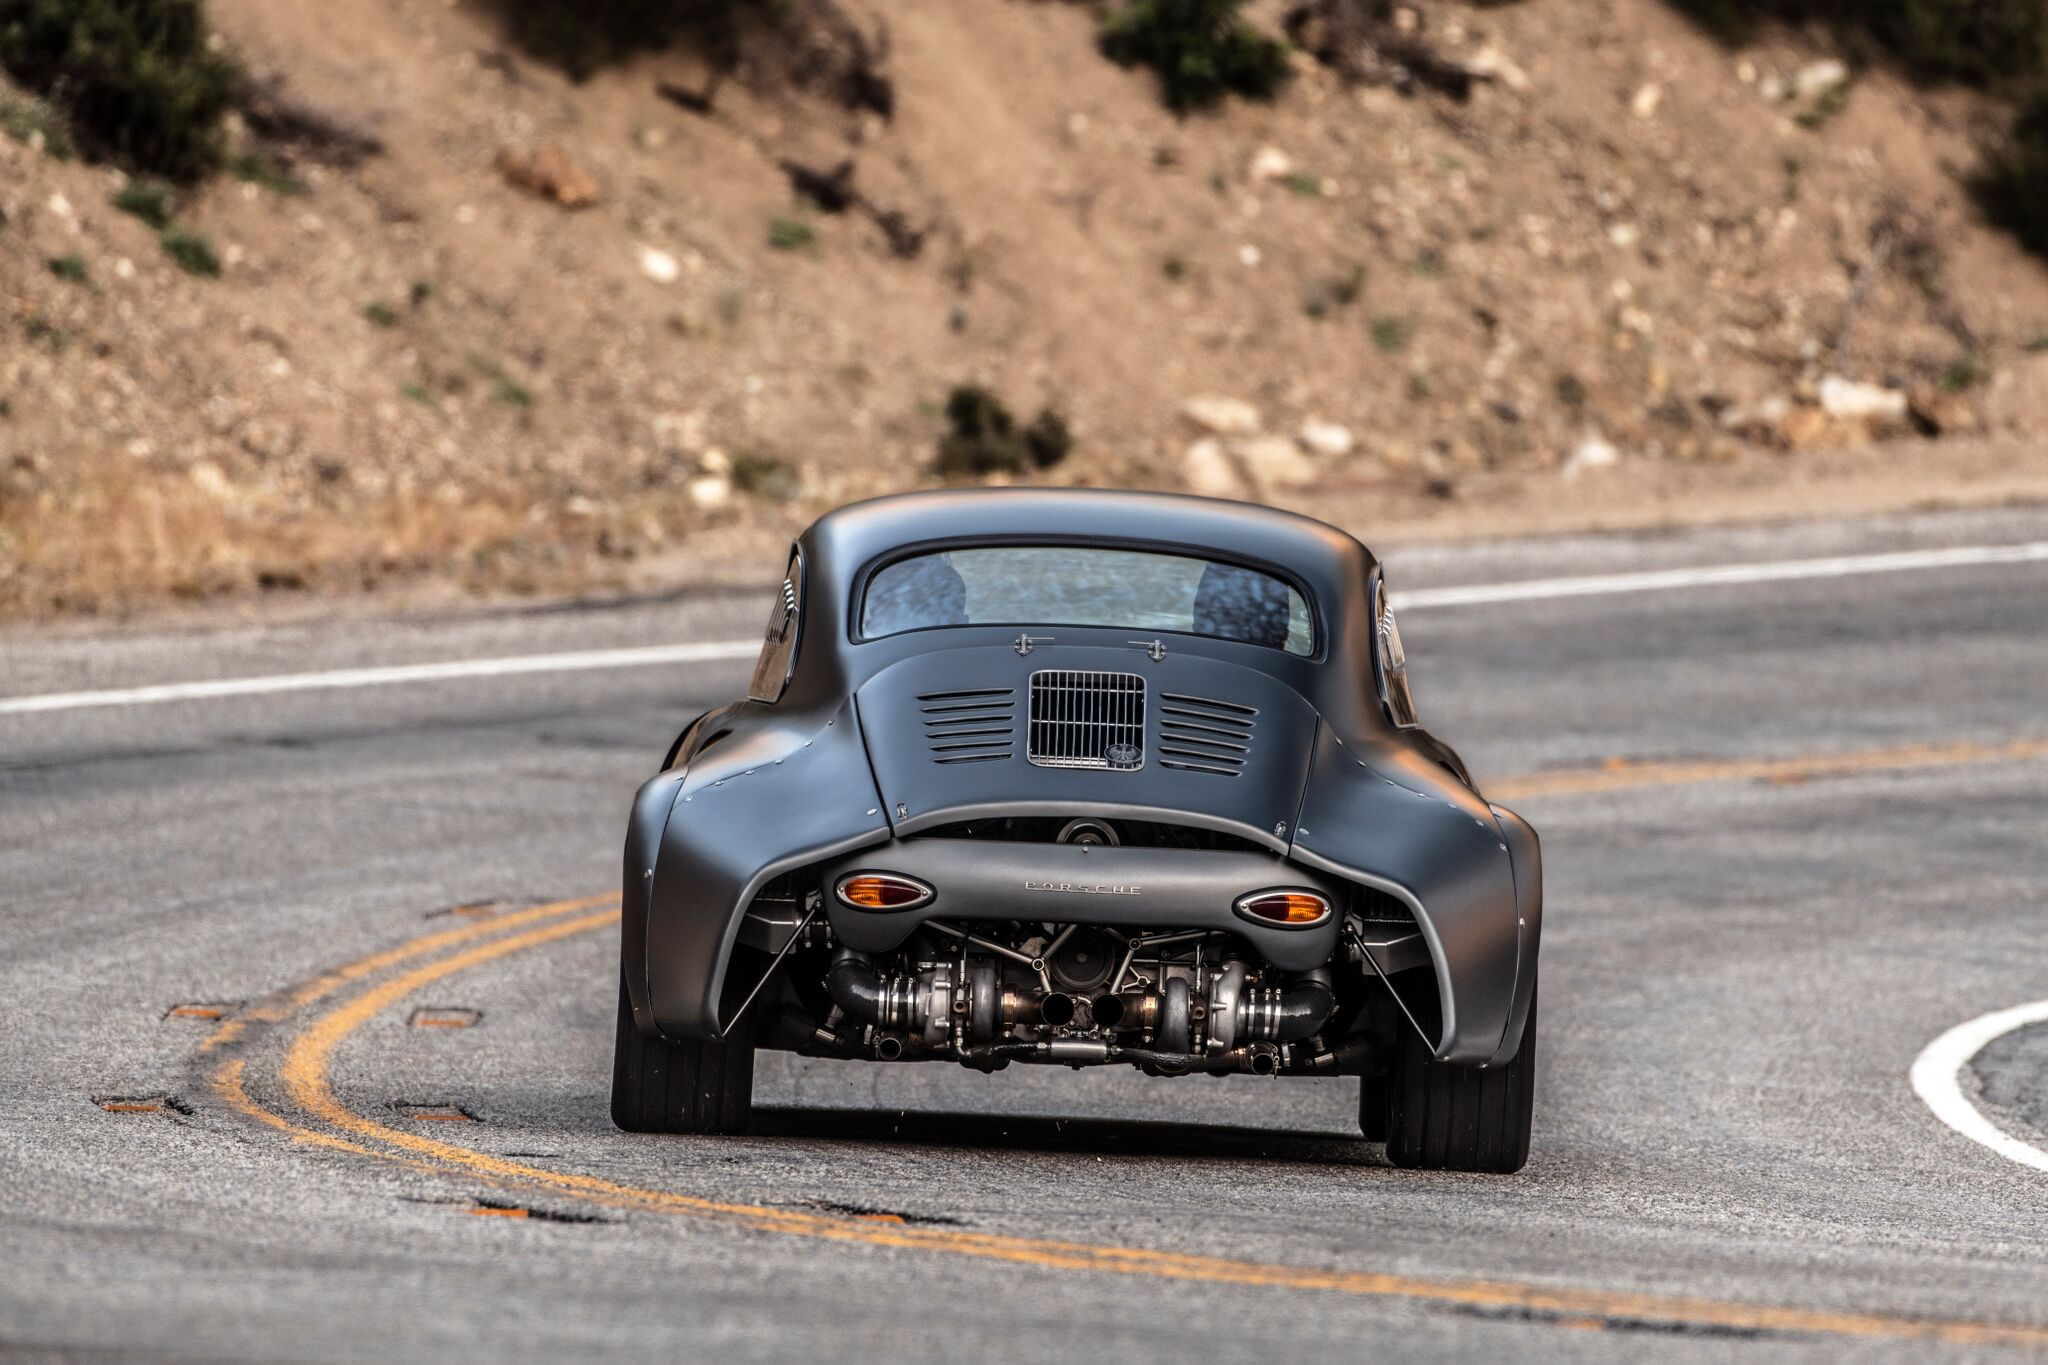 Porsche-356-RSR-Outlaw-by-Momo-and-Emory-motorsports-14